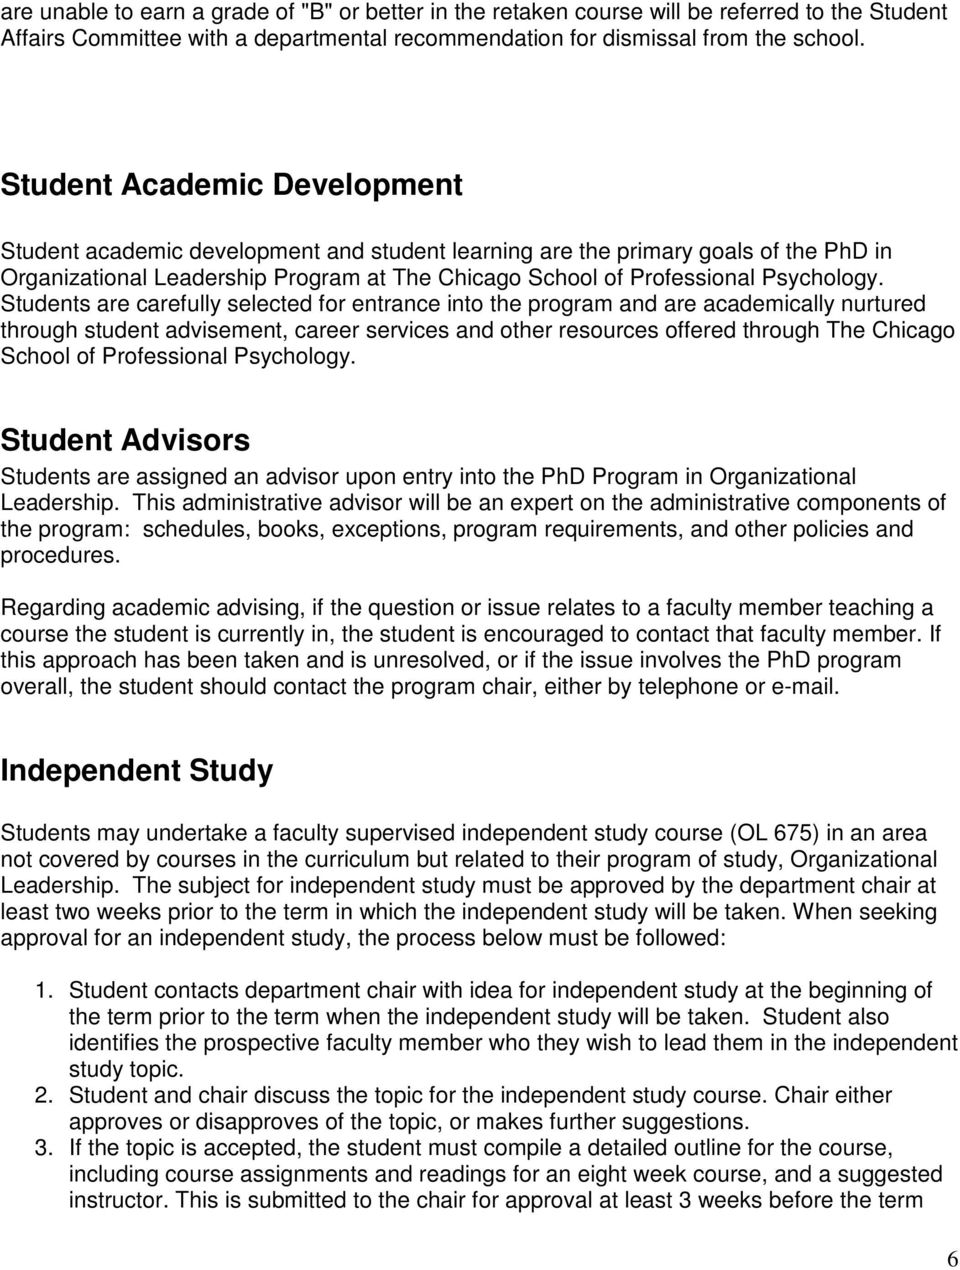 Students are carefully selected for entrance into the program and are academically nurtured through student advisement, career services and other resources offered through The Chicago School of